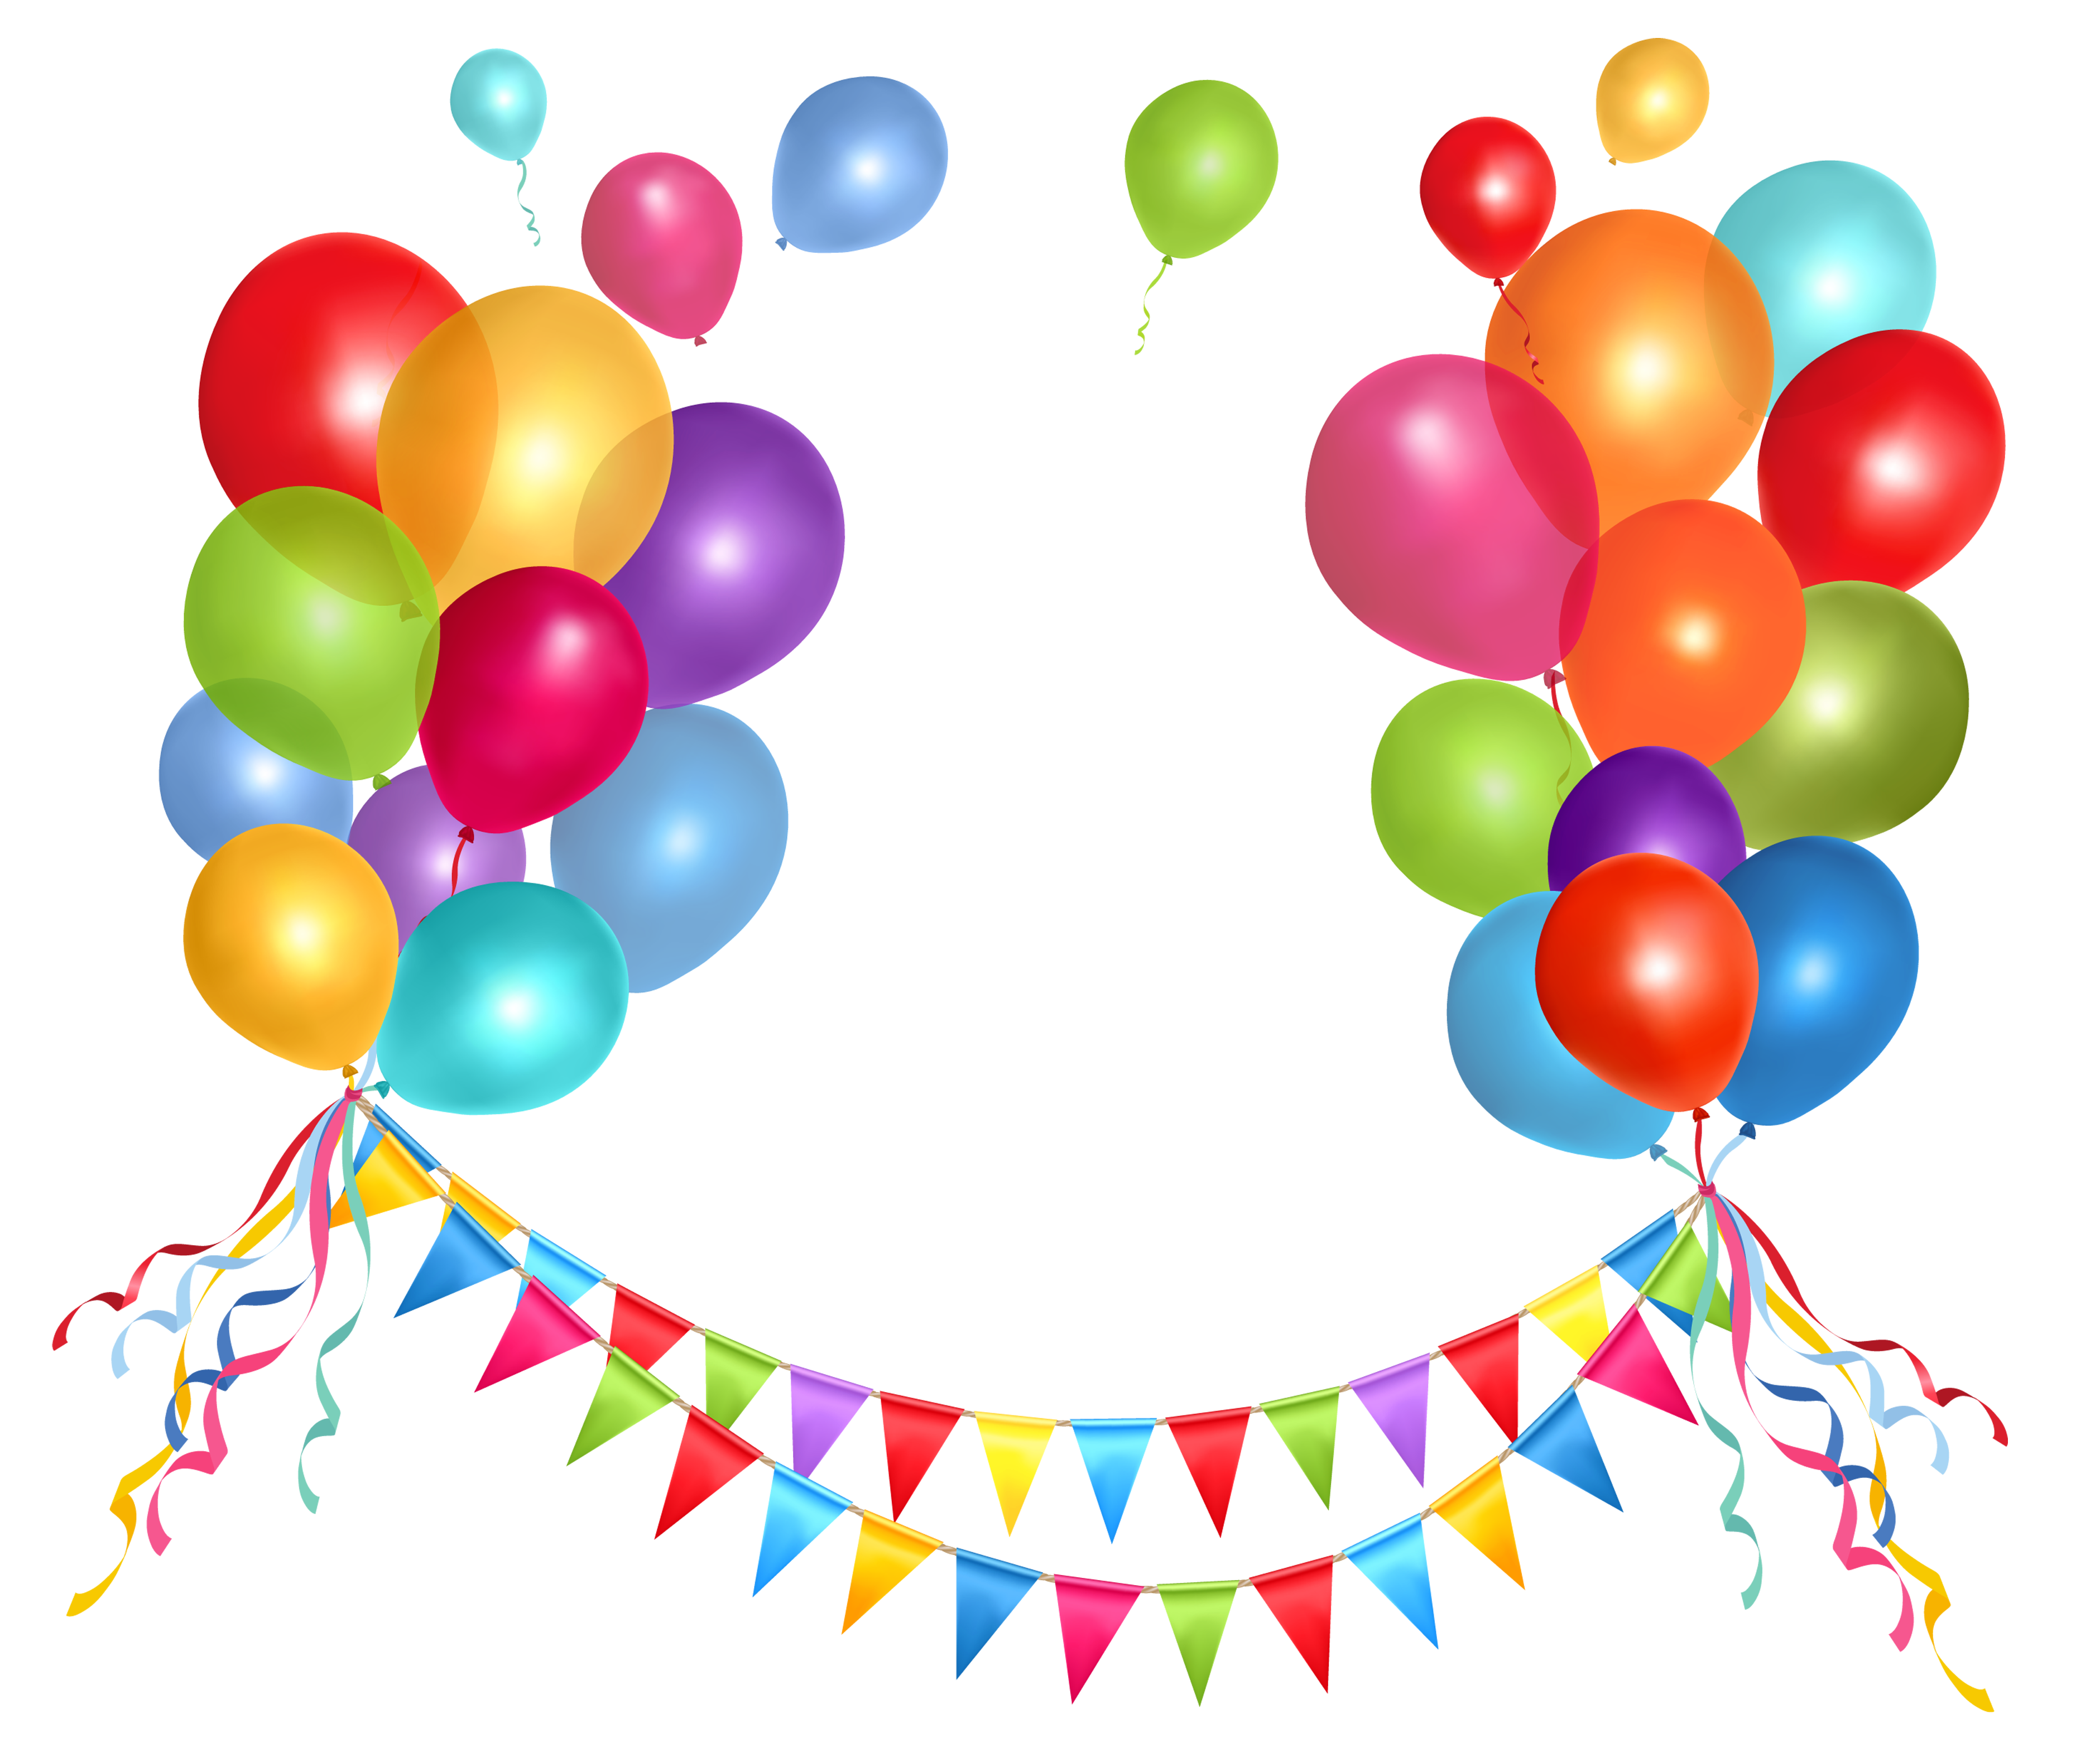 Halloween party balloons clipart picture library Transparent Party Streamer and Balloons PNG Clipart Picture ... picture library